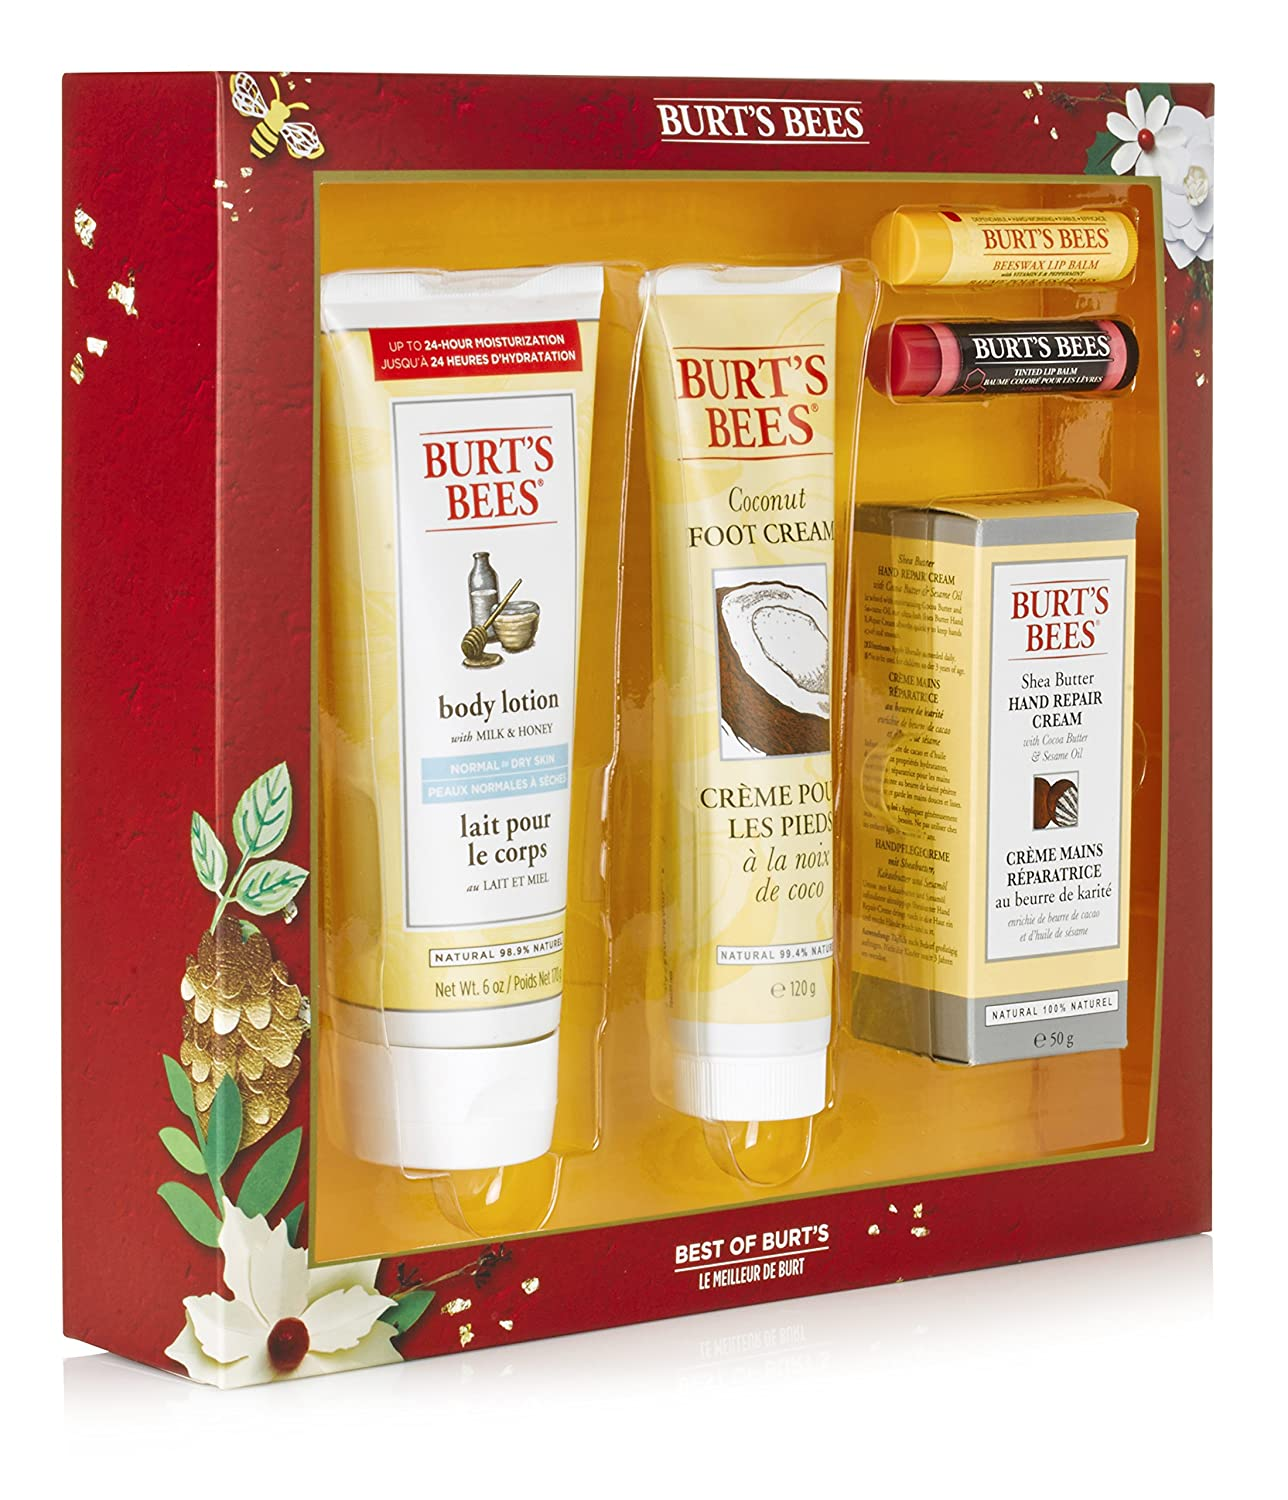 Burt's Bees Best of Burt's Gift Set Cbee Europe Ltd 21246-14